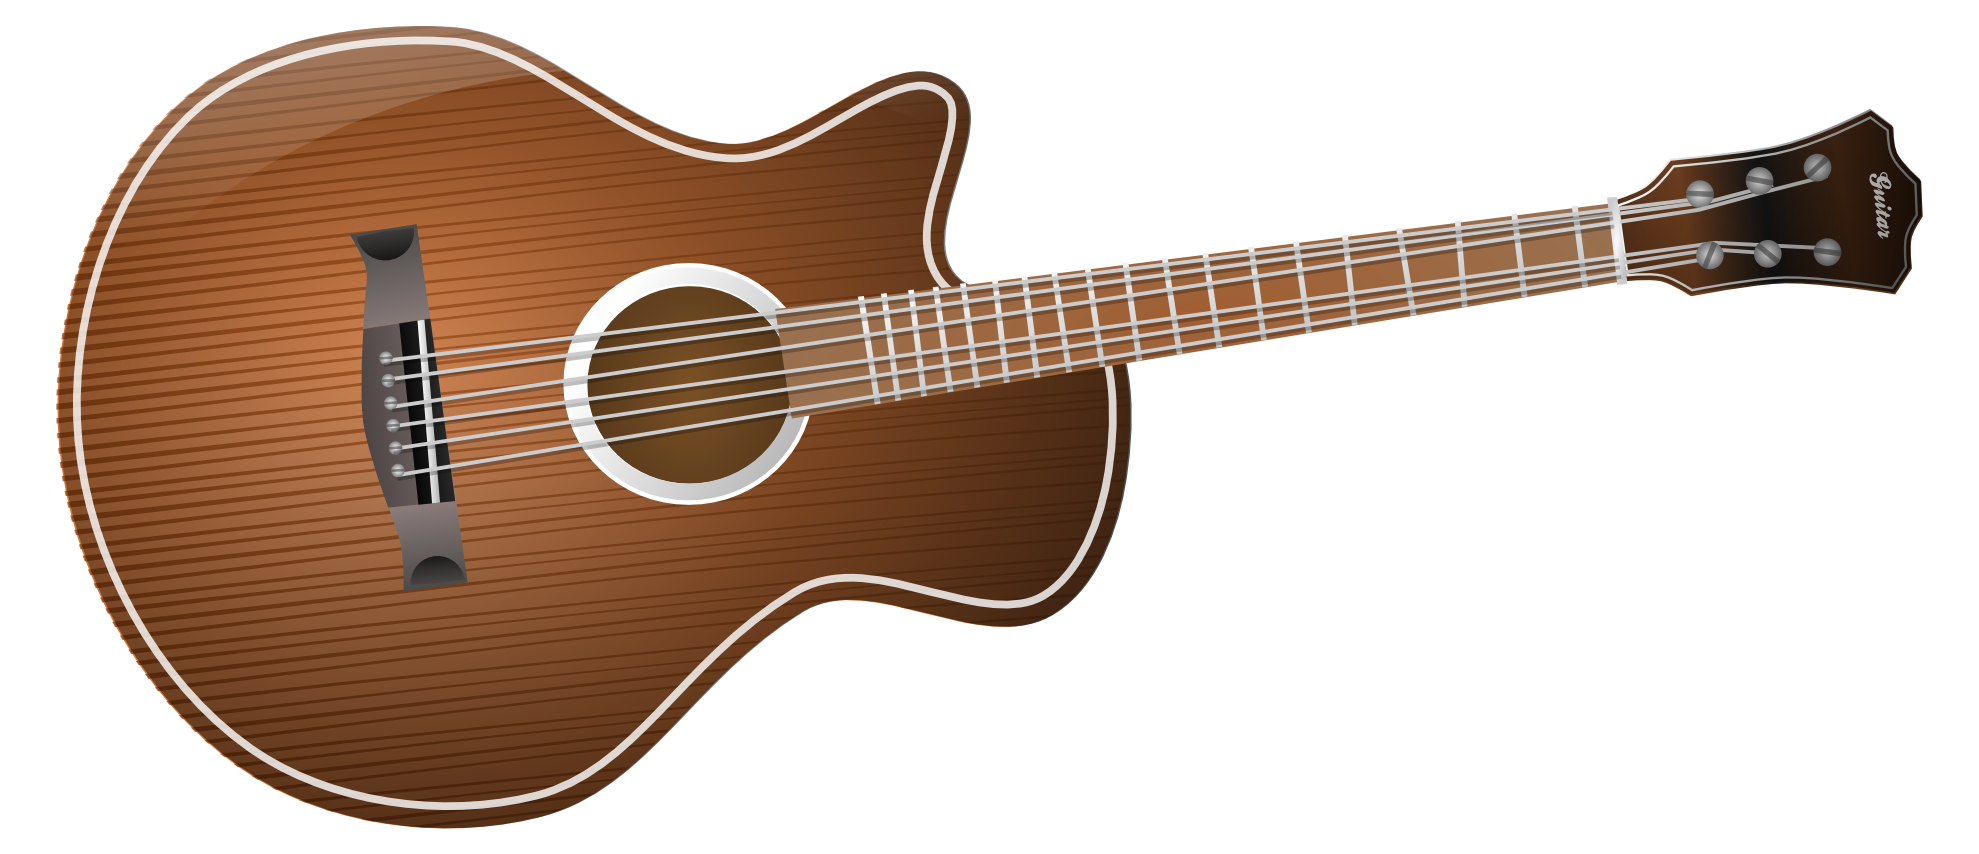 Guitar Clipart Designs Png image #46311